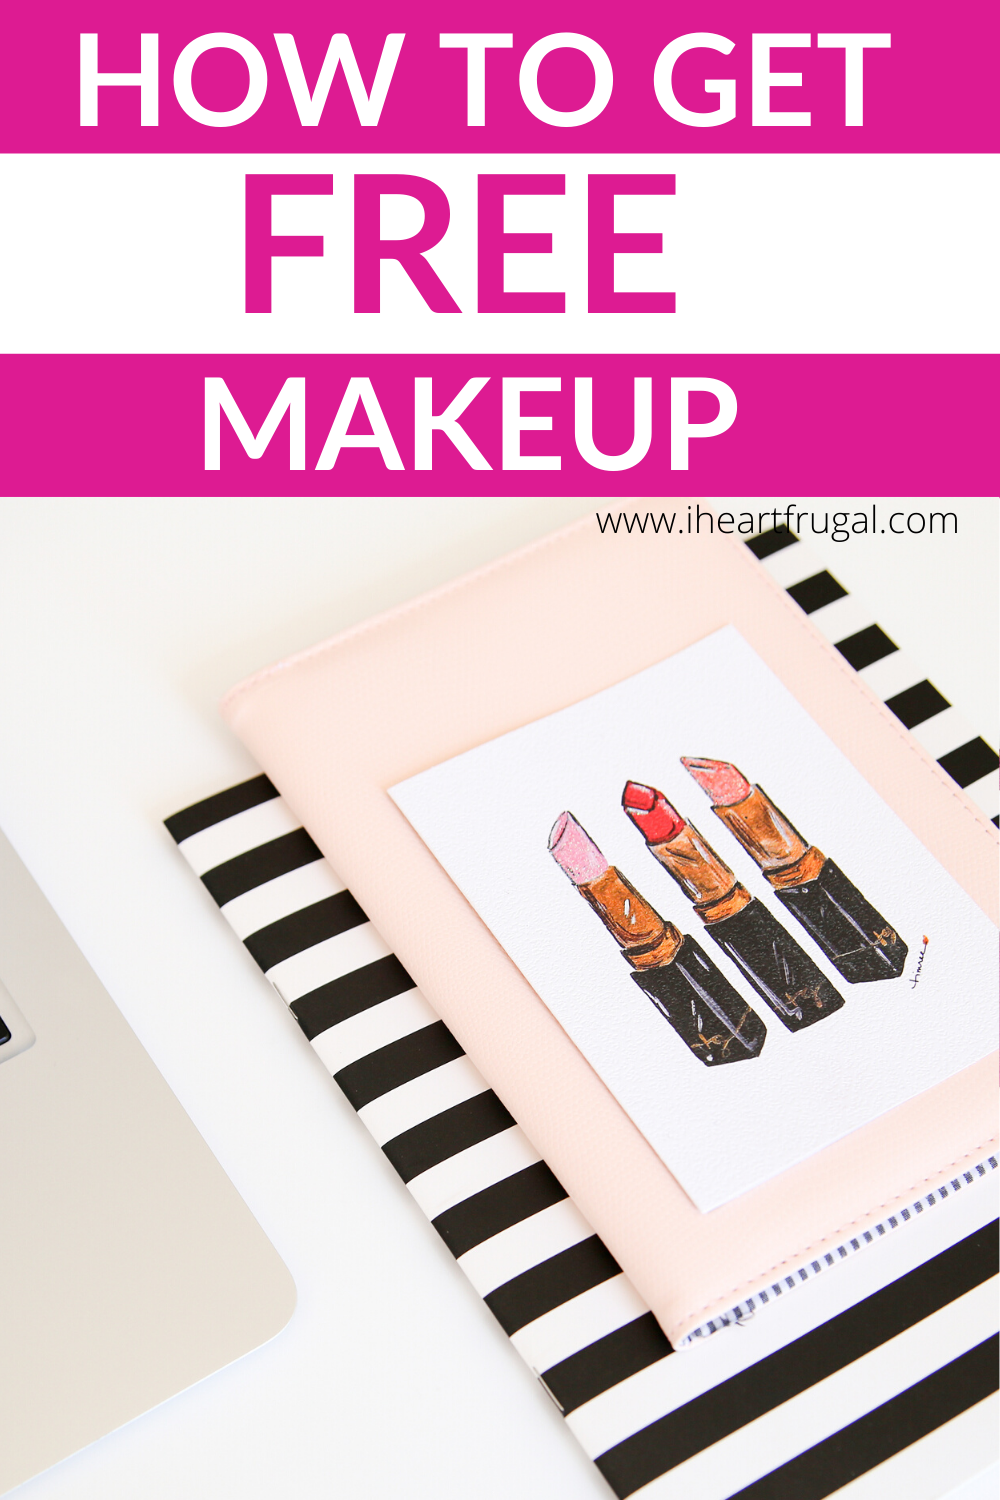 How to Score Free Makeup and Free Makeup Samples (With